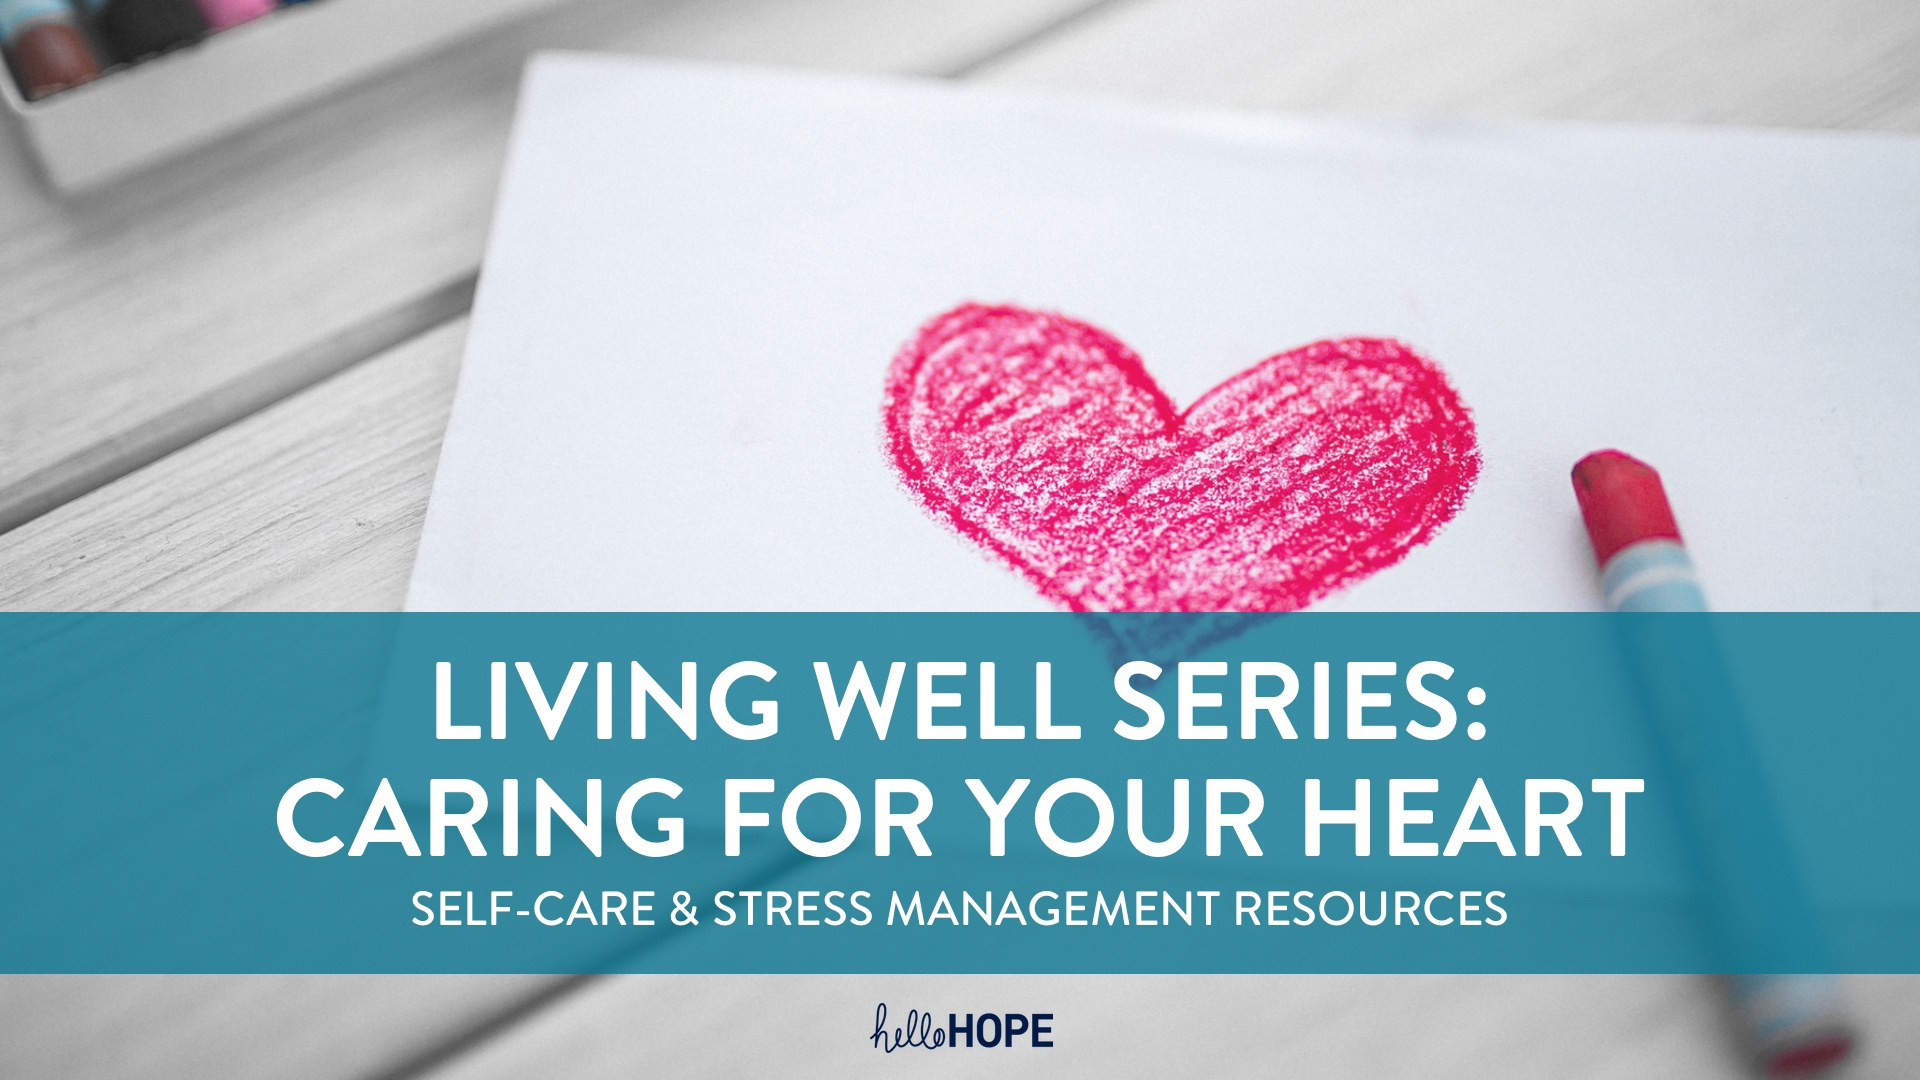 Heart Sketch and Words   Living Well   Caring for your Heart   helloHOPE Resource